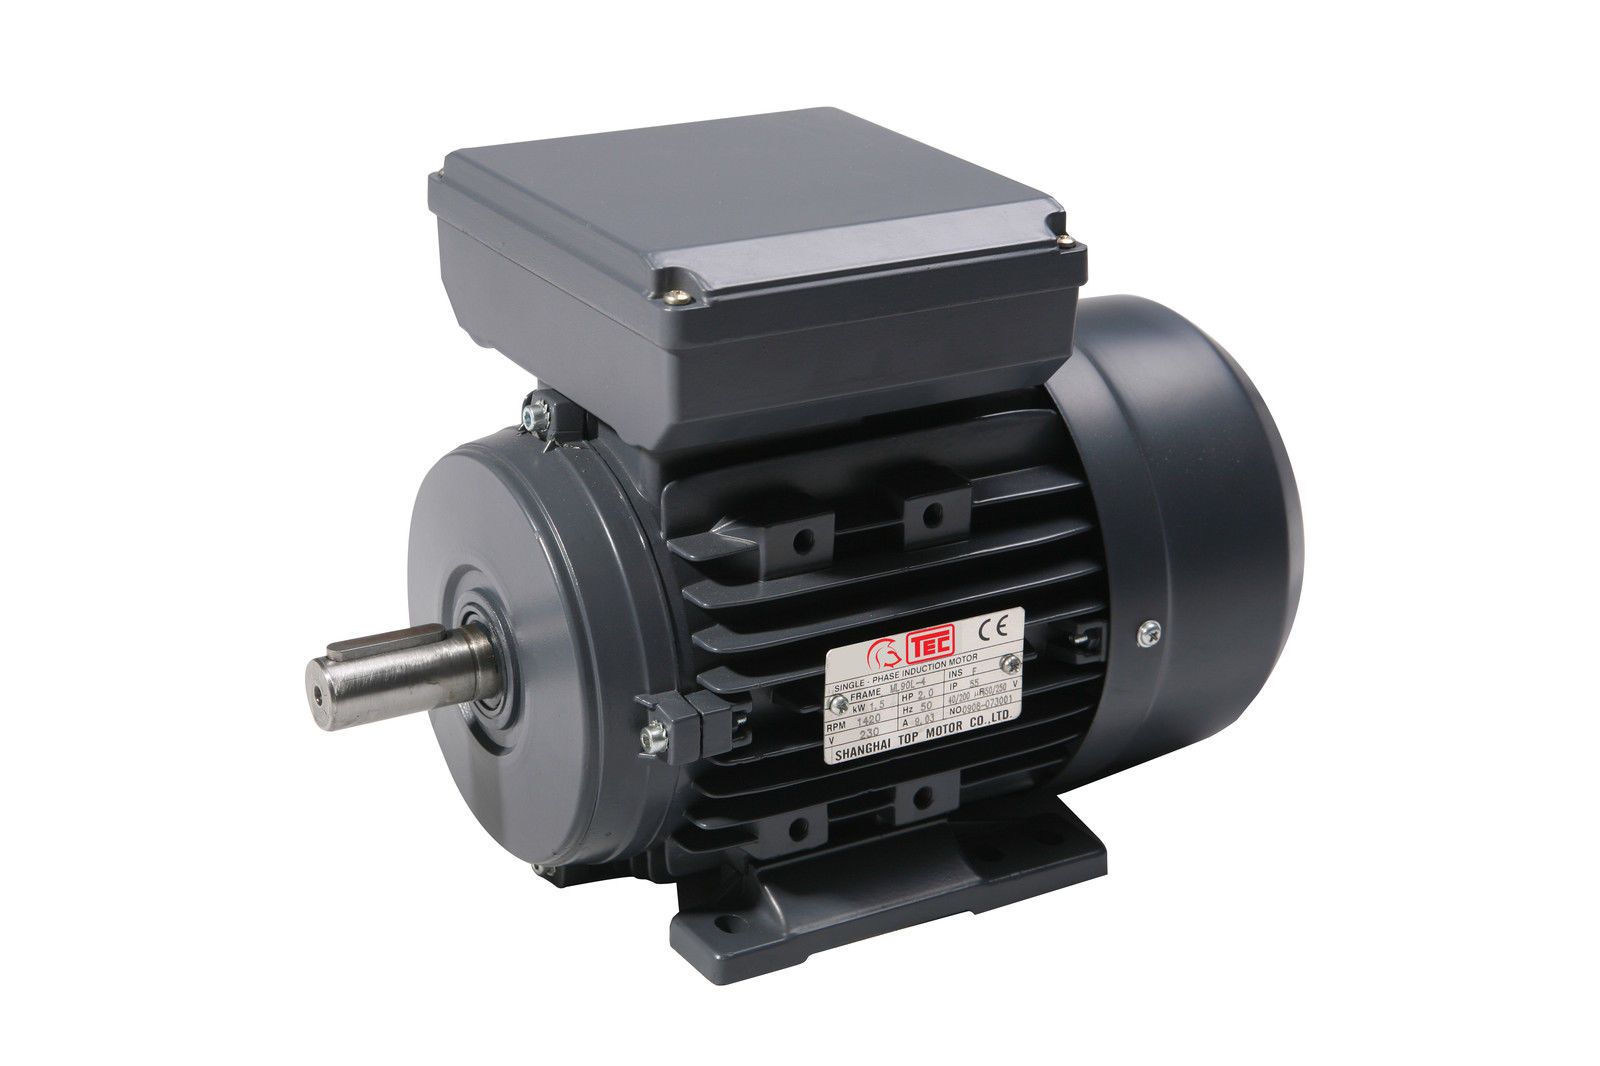 5 Hp Electric Motor >> Details About 3 7 Kw 5 Hp Single Phase Electric Motor 240v 1400 Rpm 3 7kw 5hp 4 Pole 3700w